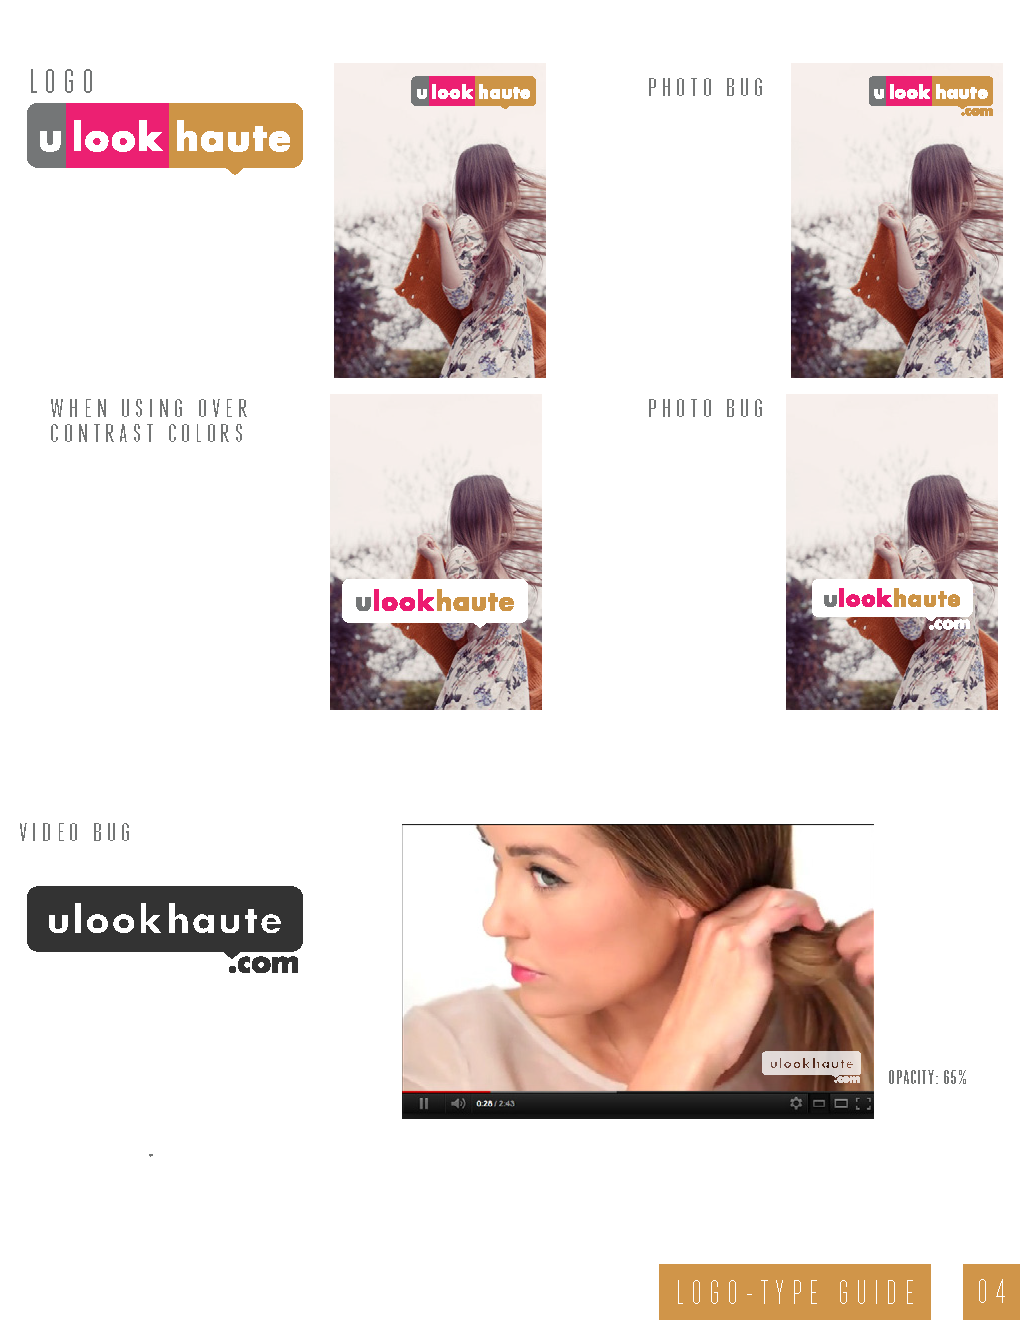 ulookhaute_brandGuide_v02_Page_4.png